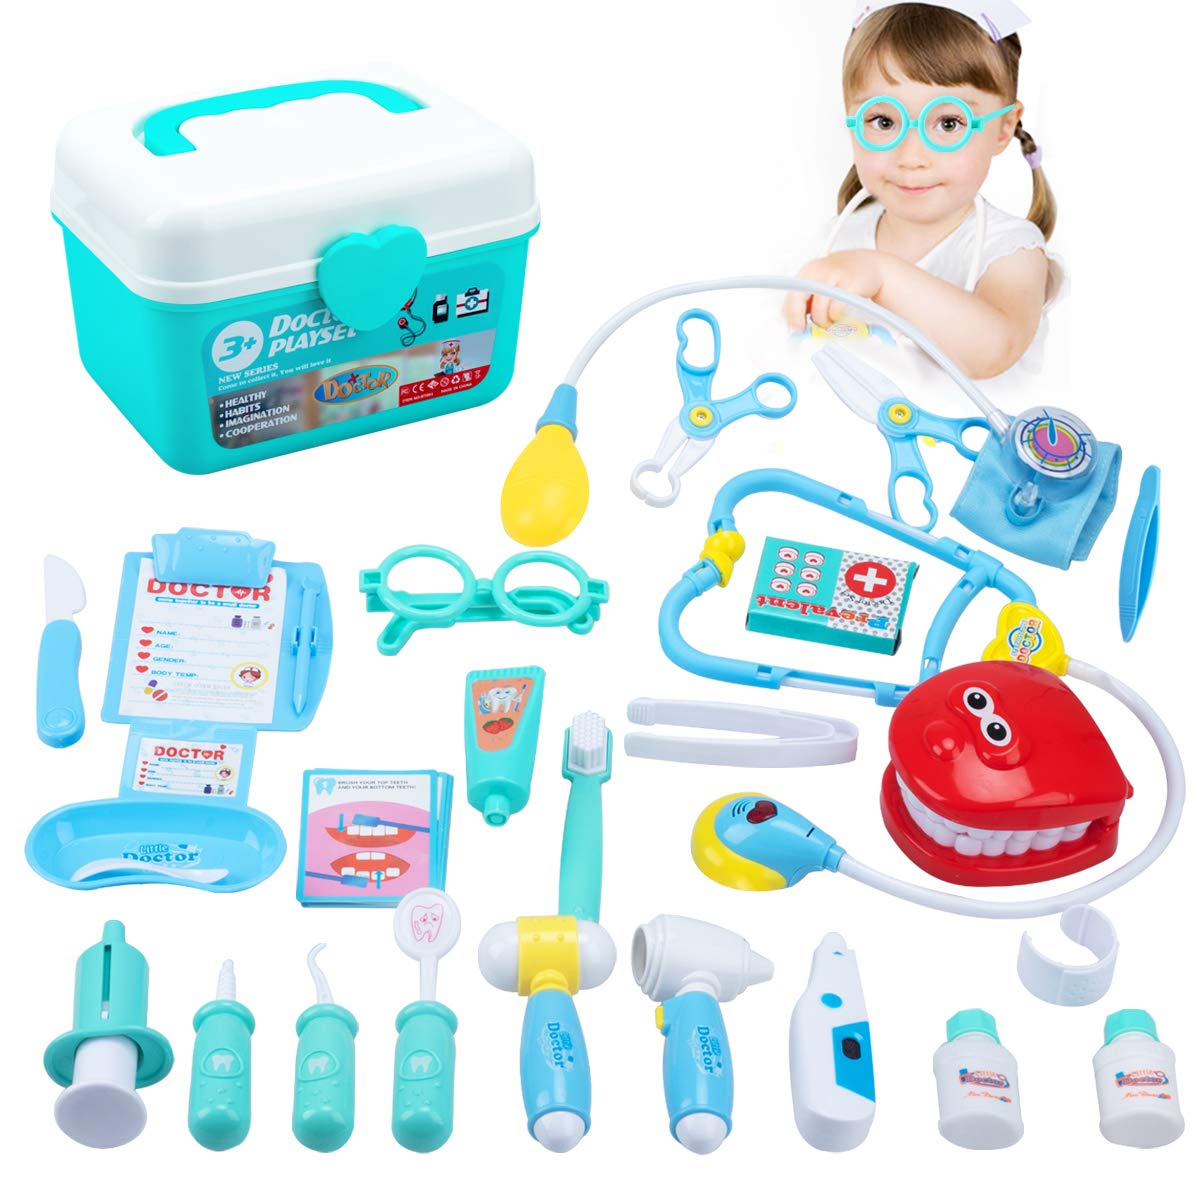 Tigerhu Doctor Kit, 33 Pieces Pretend Medical Play Set for Kids, Children, Toddler